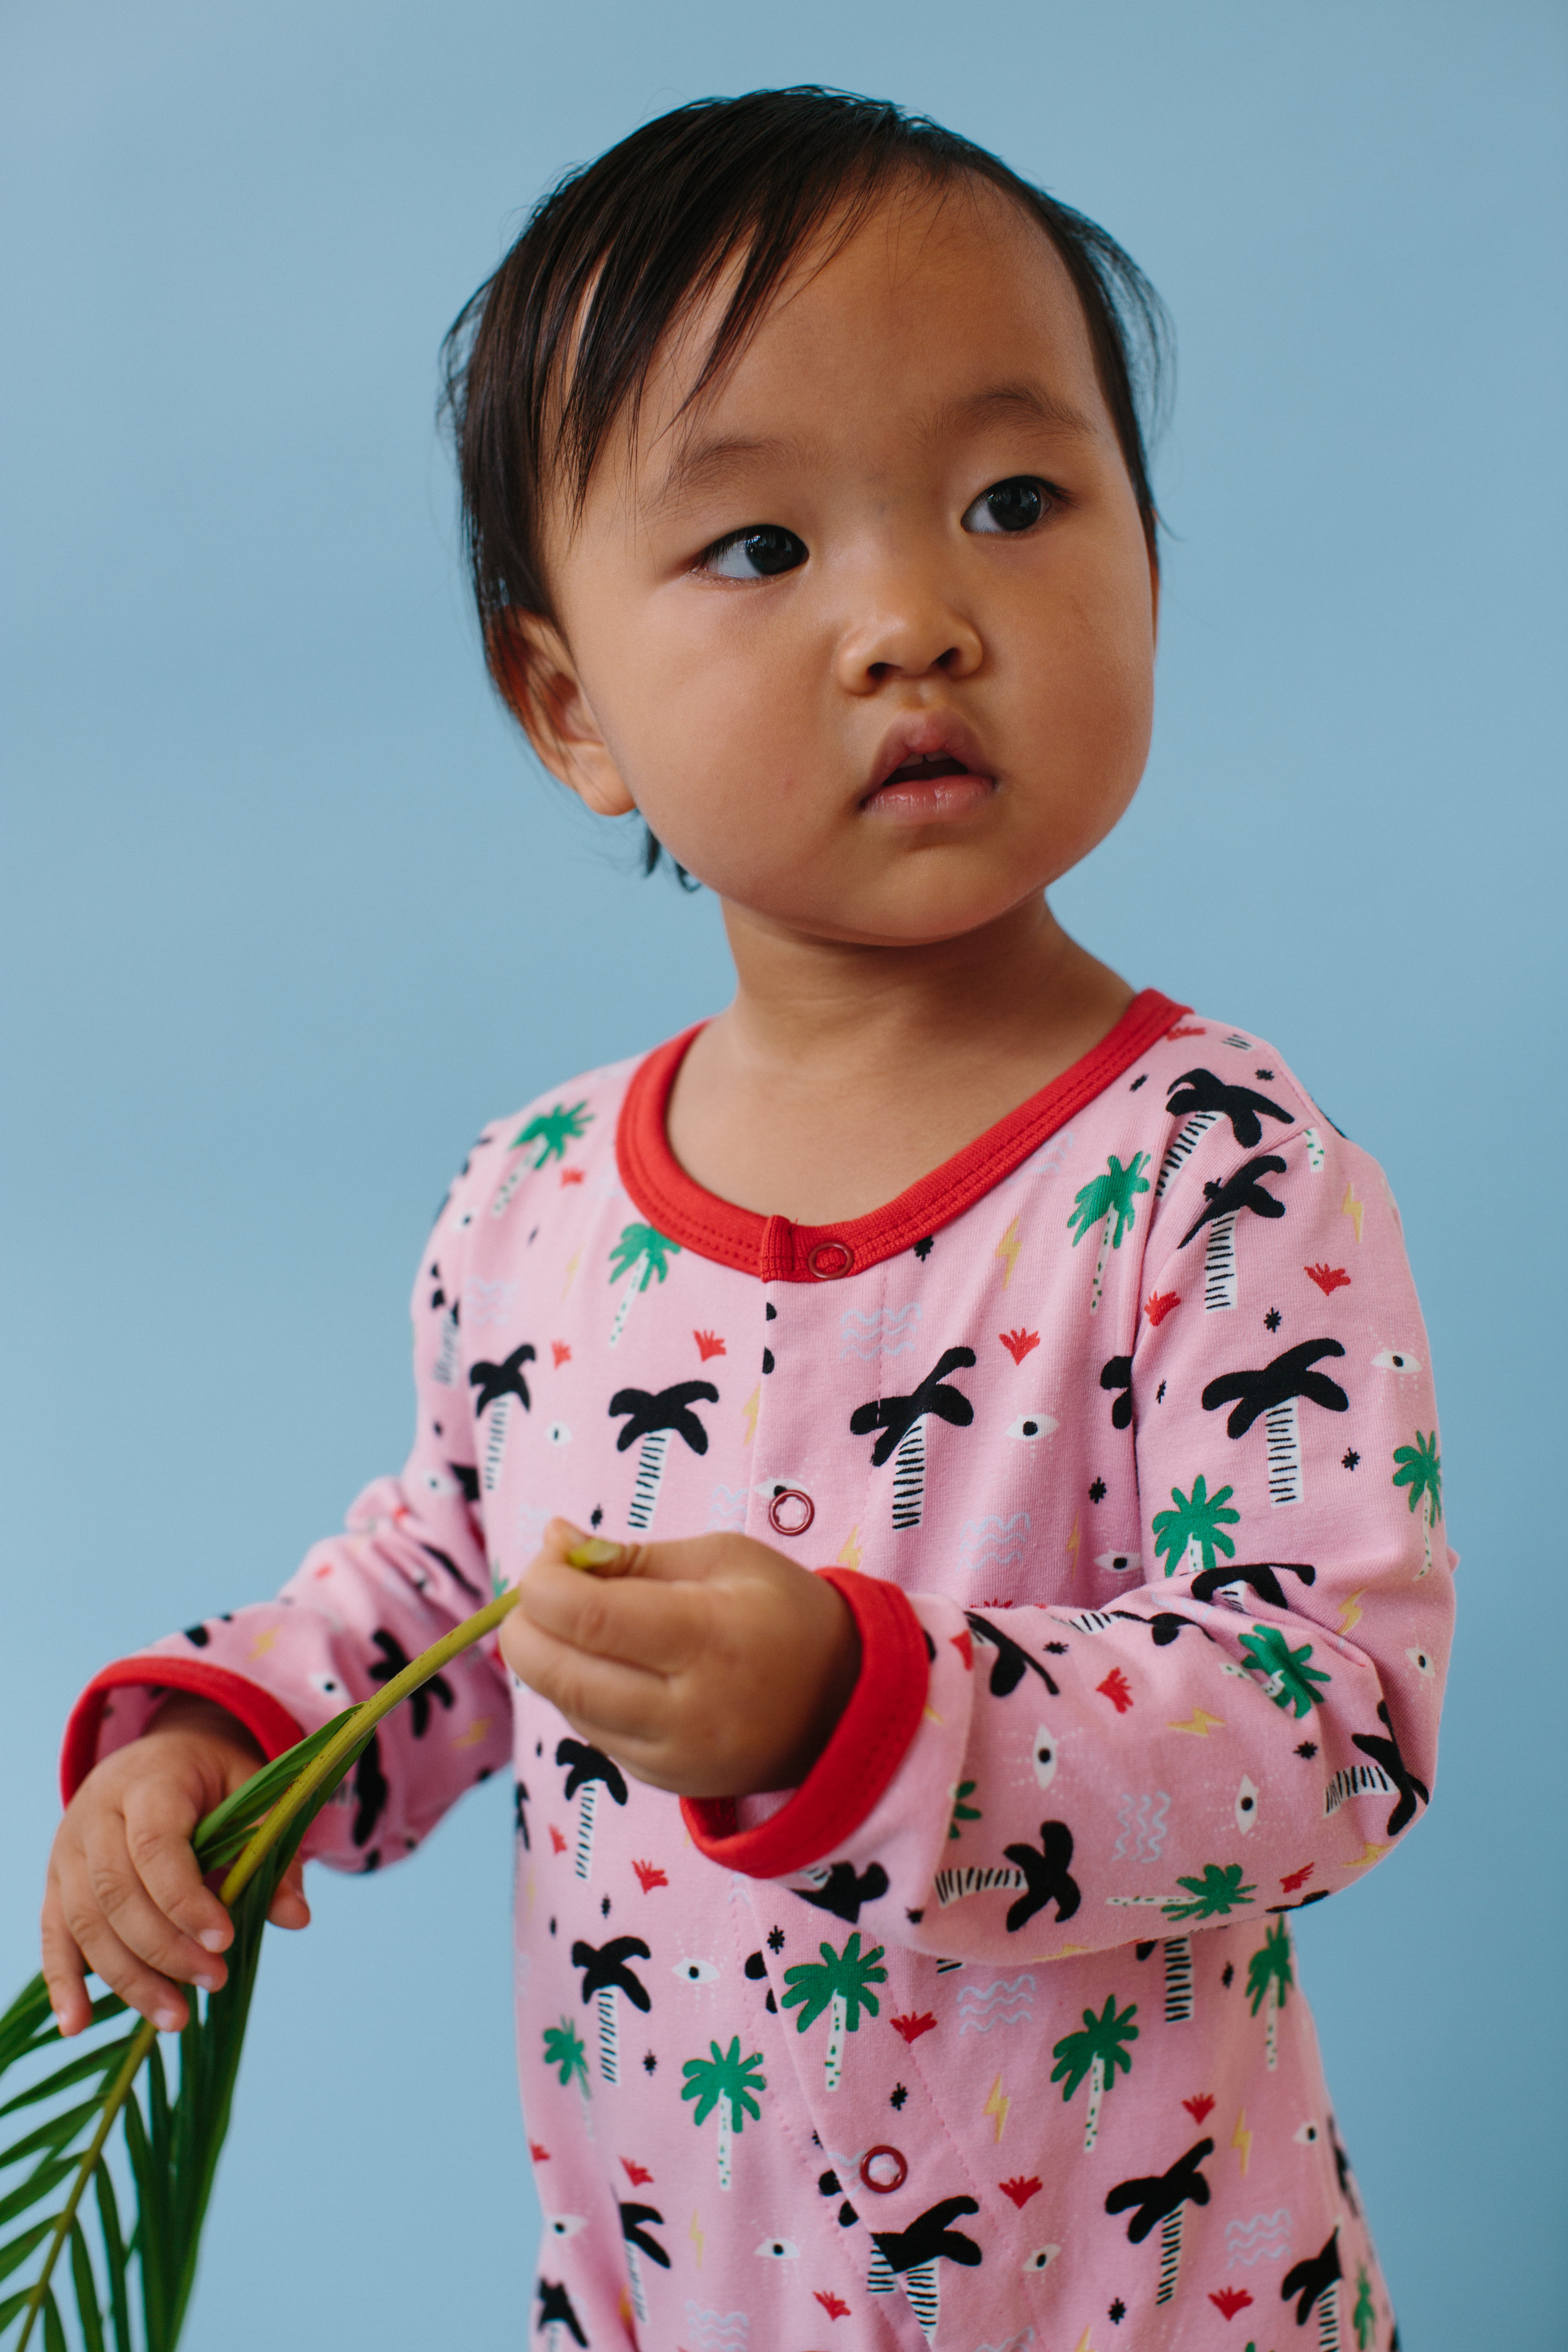 Palm Eye Pajamas - Organic cotton cozies for those summer days or vacation trips with family